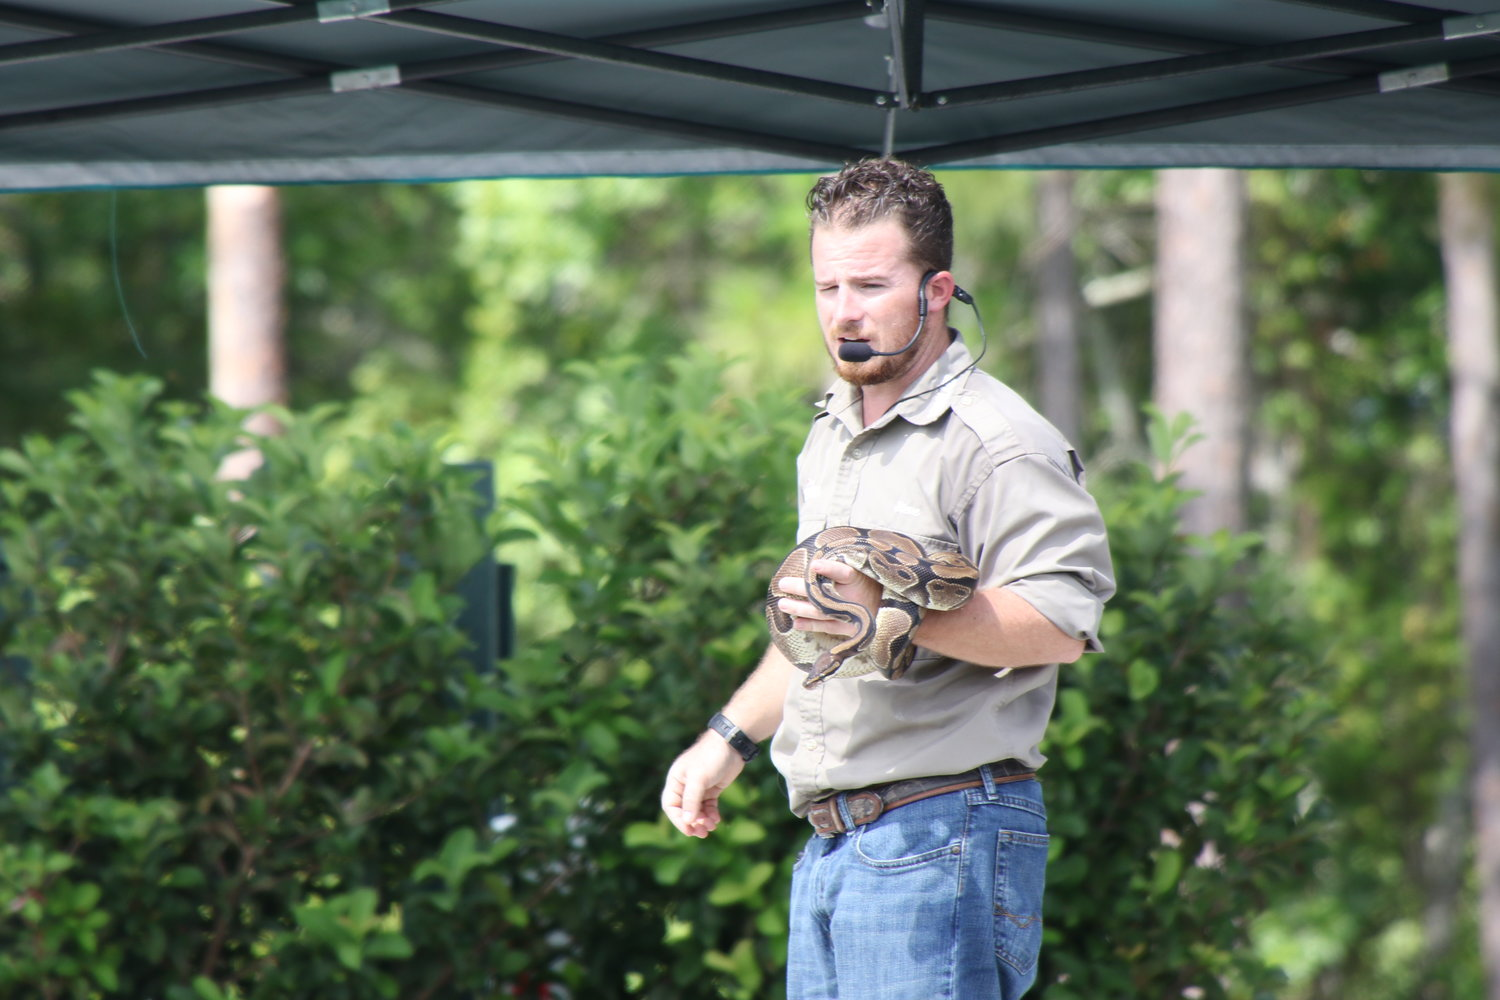 Gatorland returns to the Nocatee Farmers Market this weekend for a special wild encounters experience.